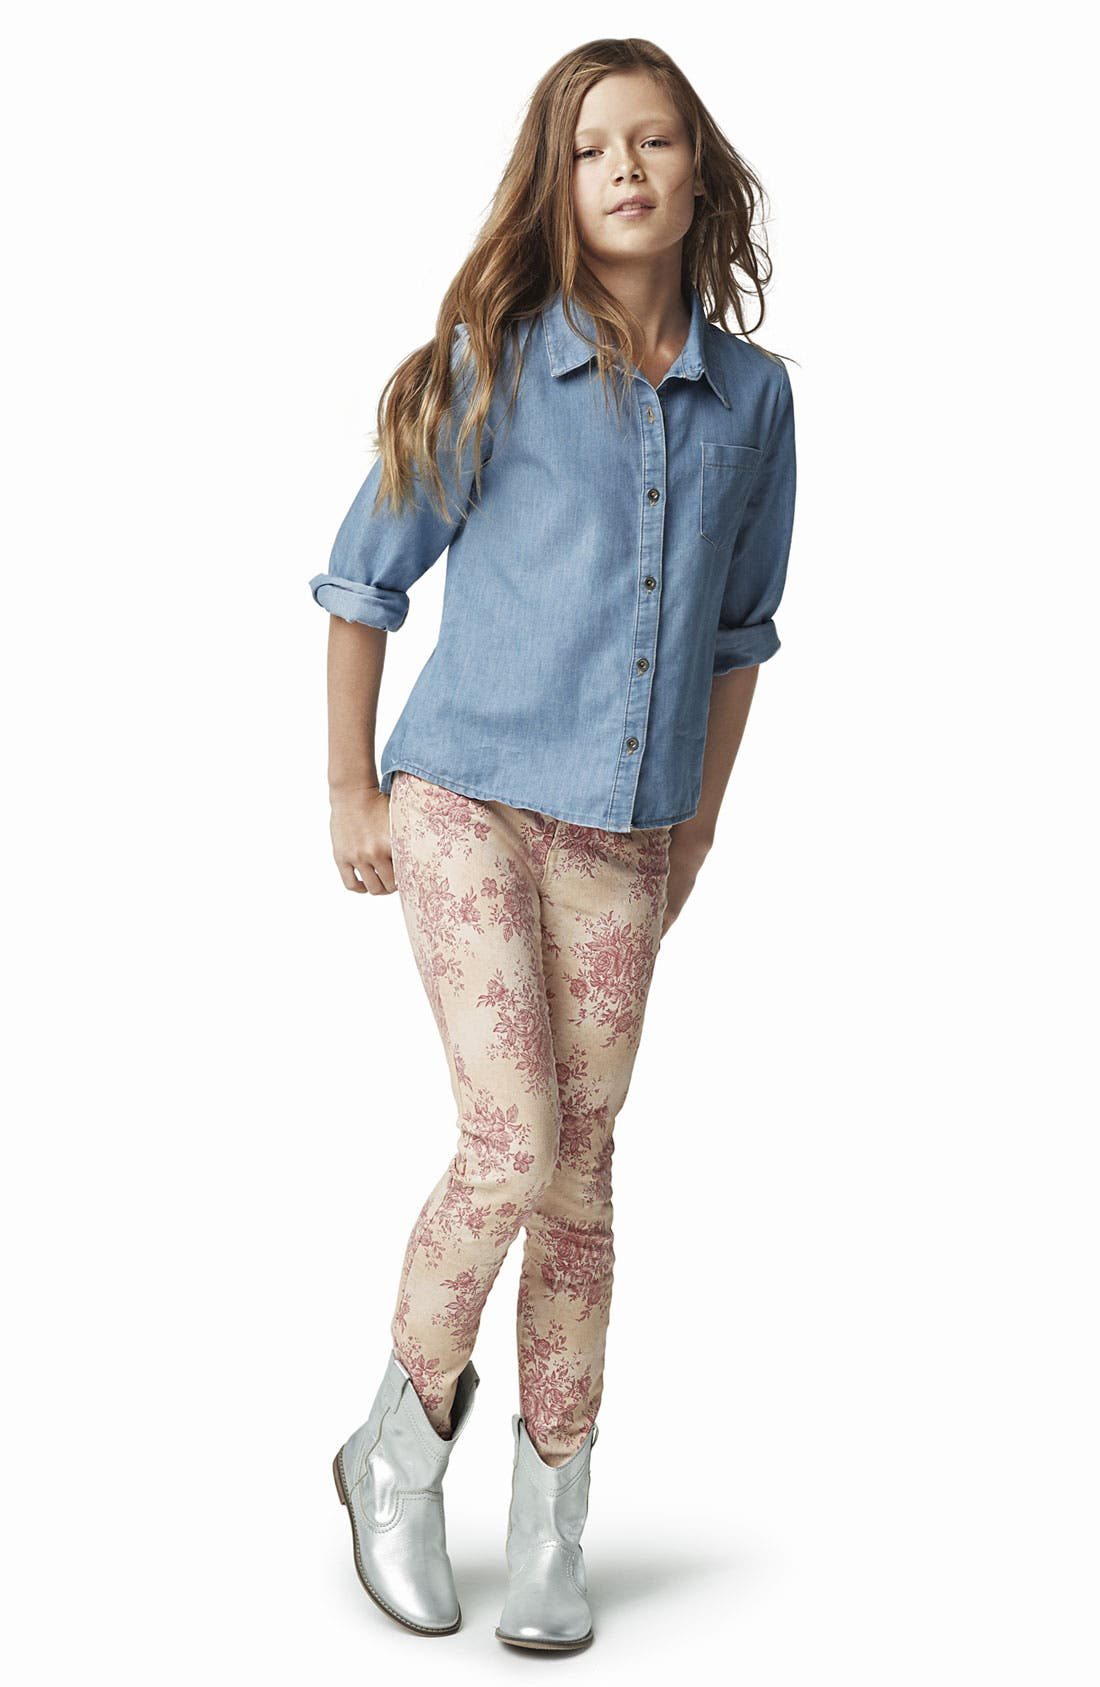 Alternate Image 1 Selected - Mia Chica Shirt, Joe's Jeans & Peek Boot (Big Girls)